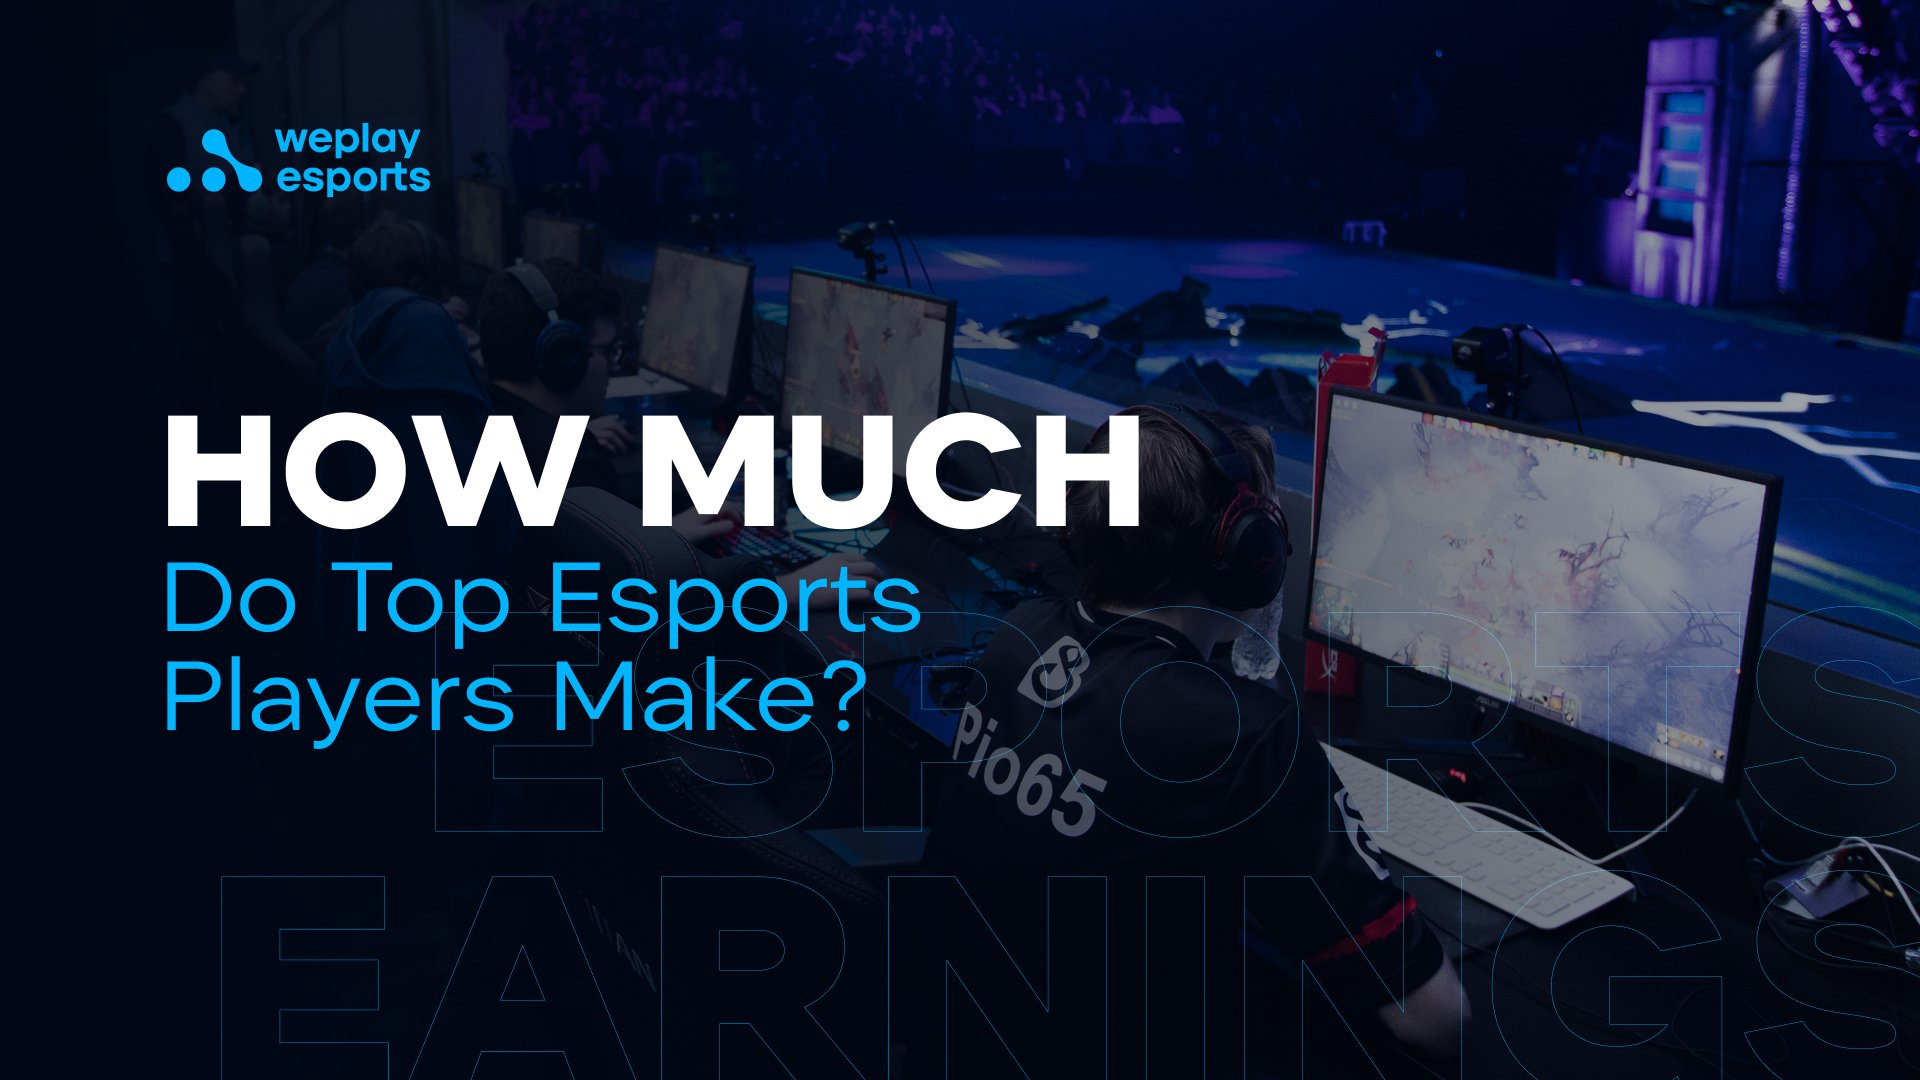 How Much Do Top Esports Players Make?